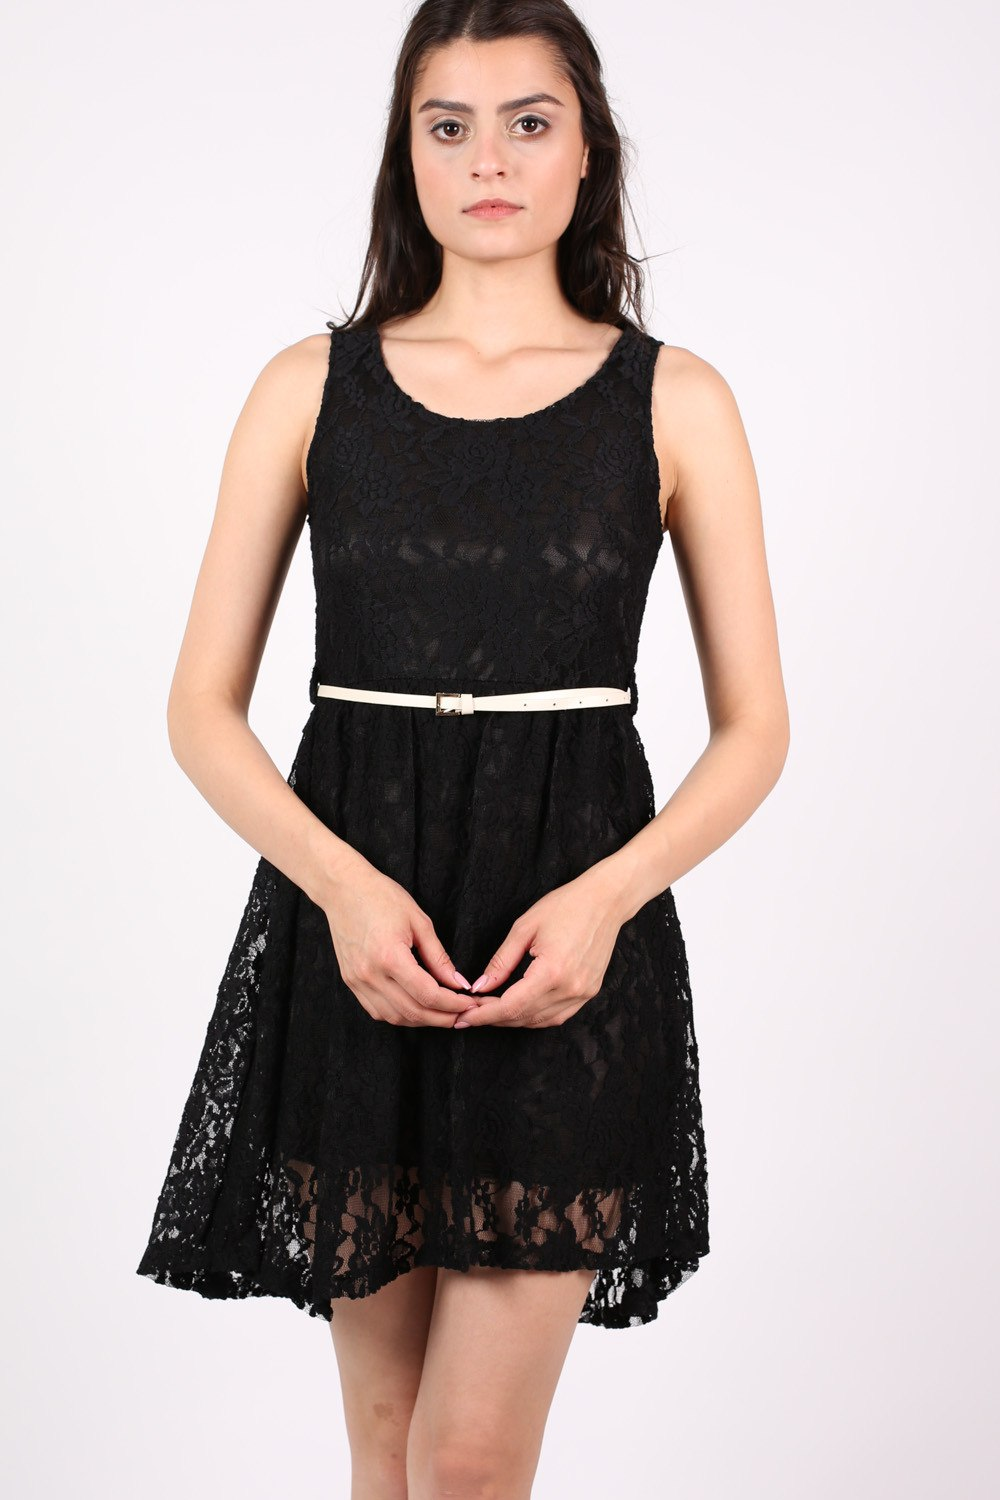 Floaty Lace Sleeveless Skater Dress With Belt in Black MODEL FRONT